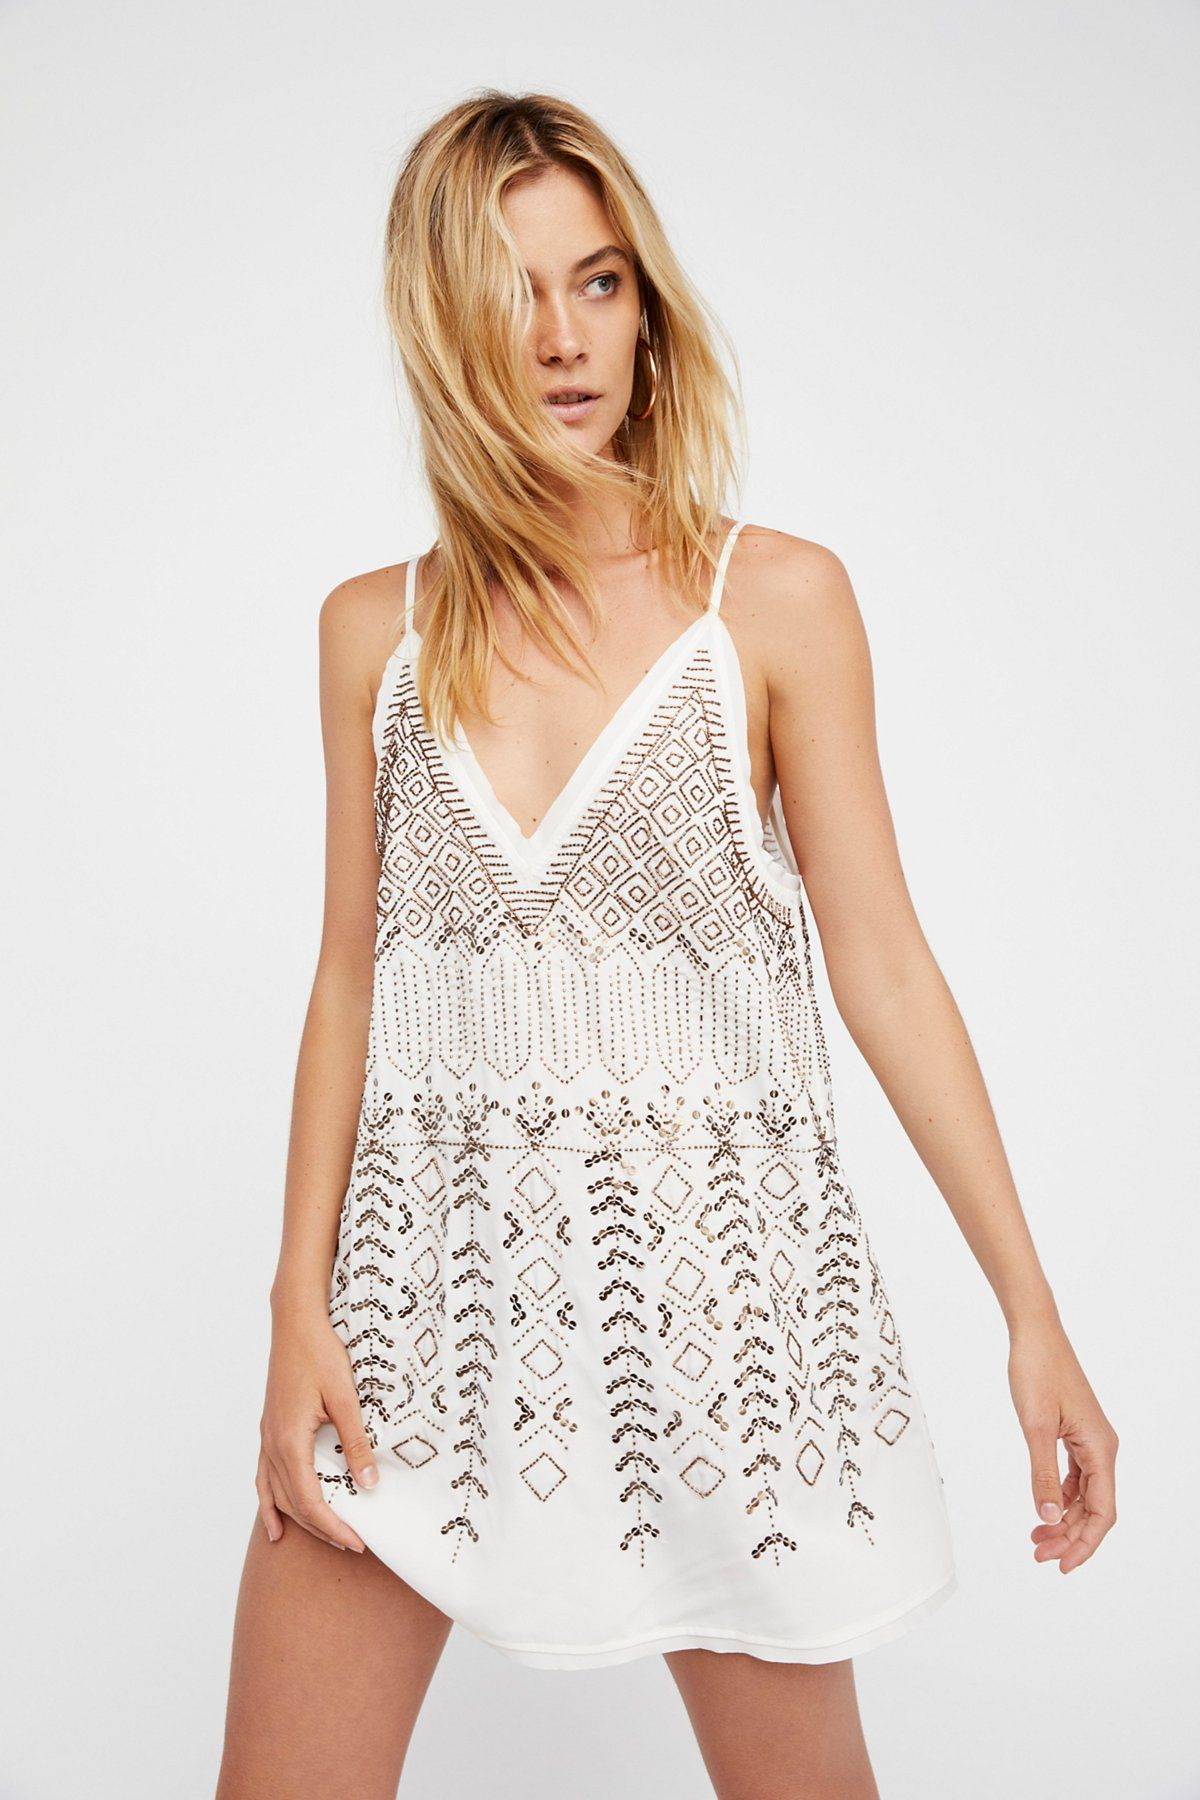 Arizona Nights Embellished Tunic Top - Ivory Free People Limited Edition Online Best For Sale GR29GQTJ